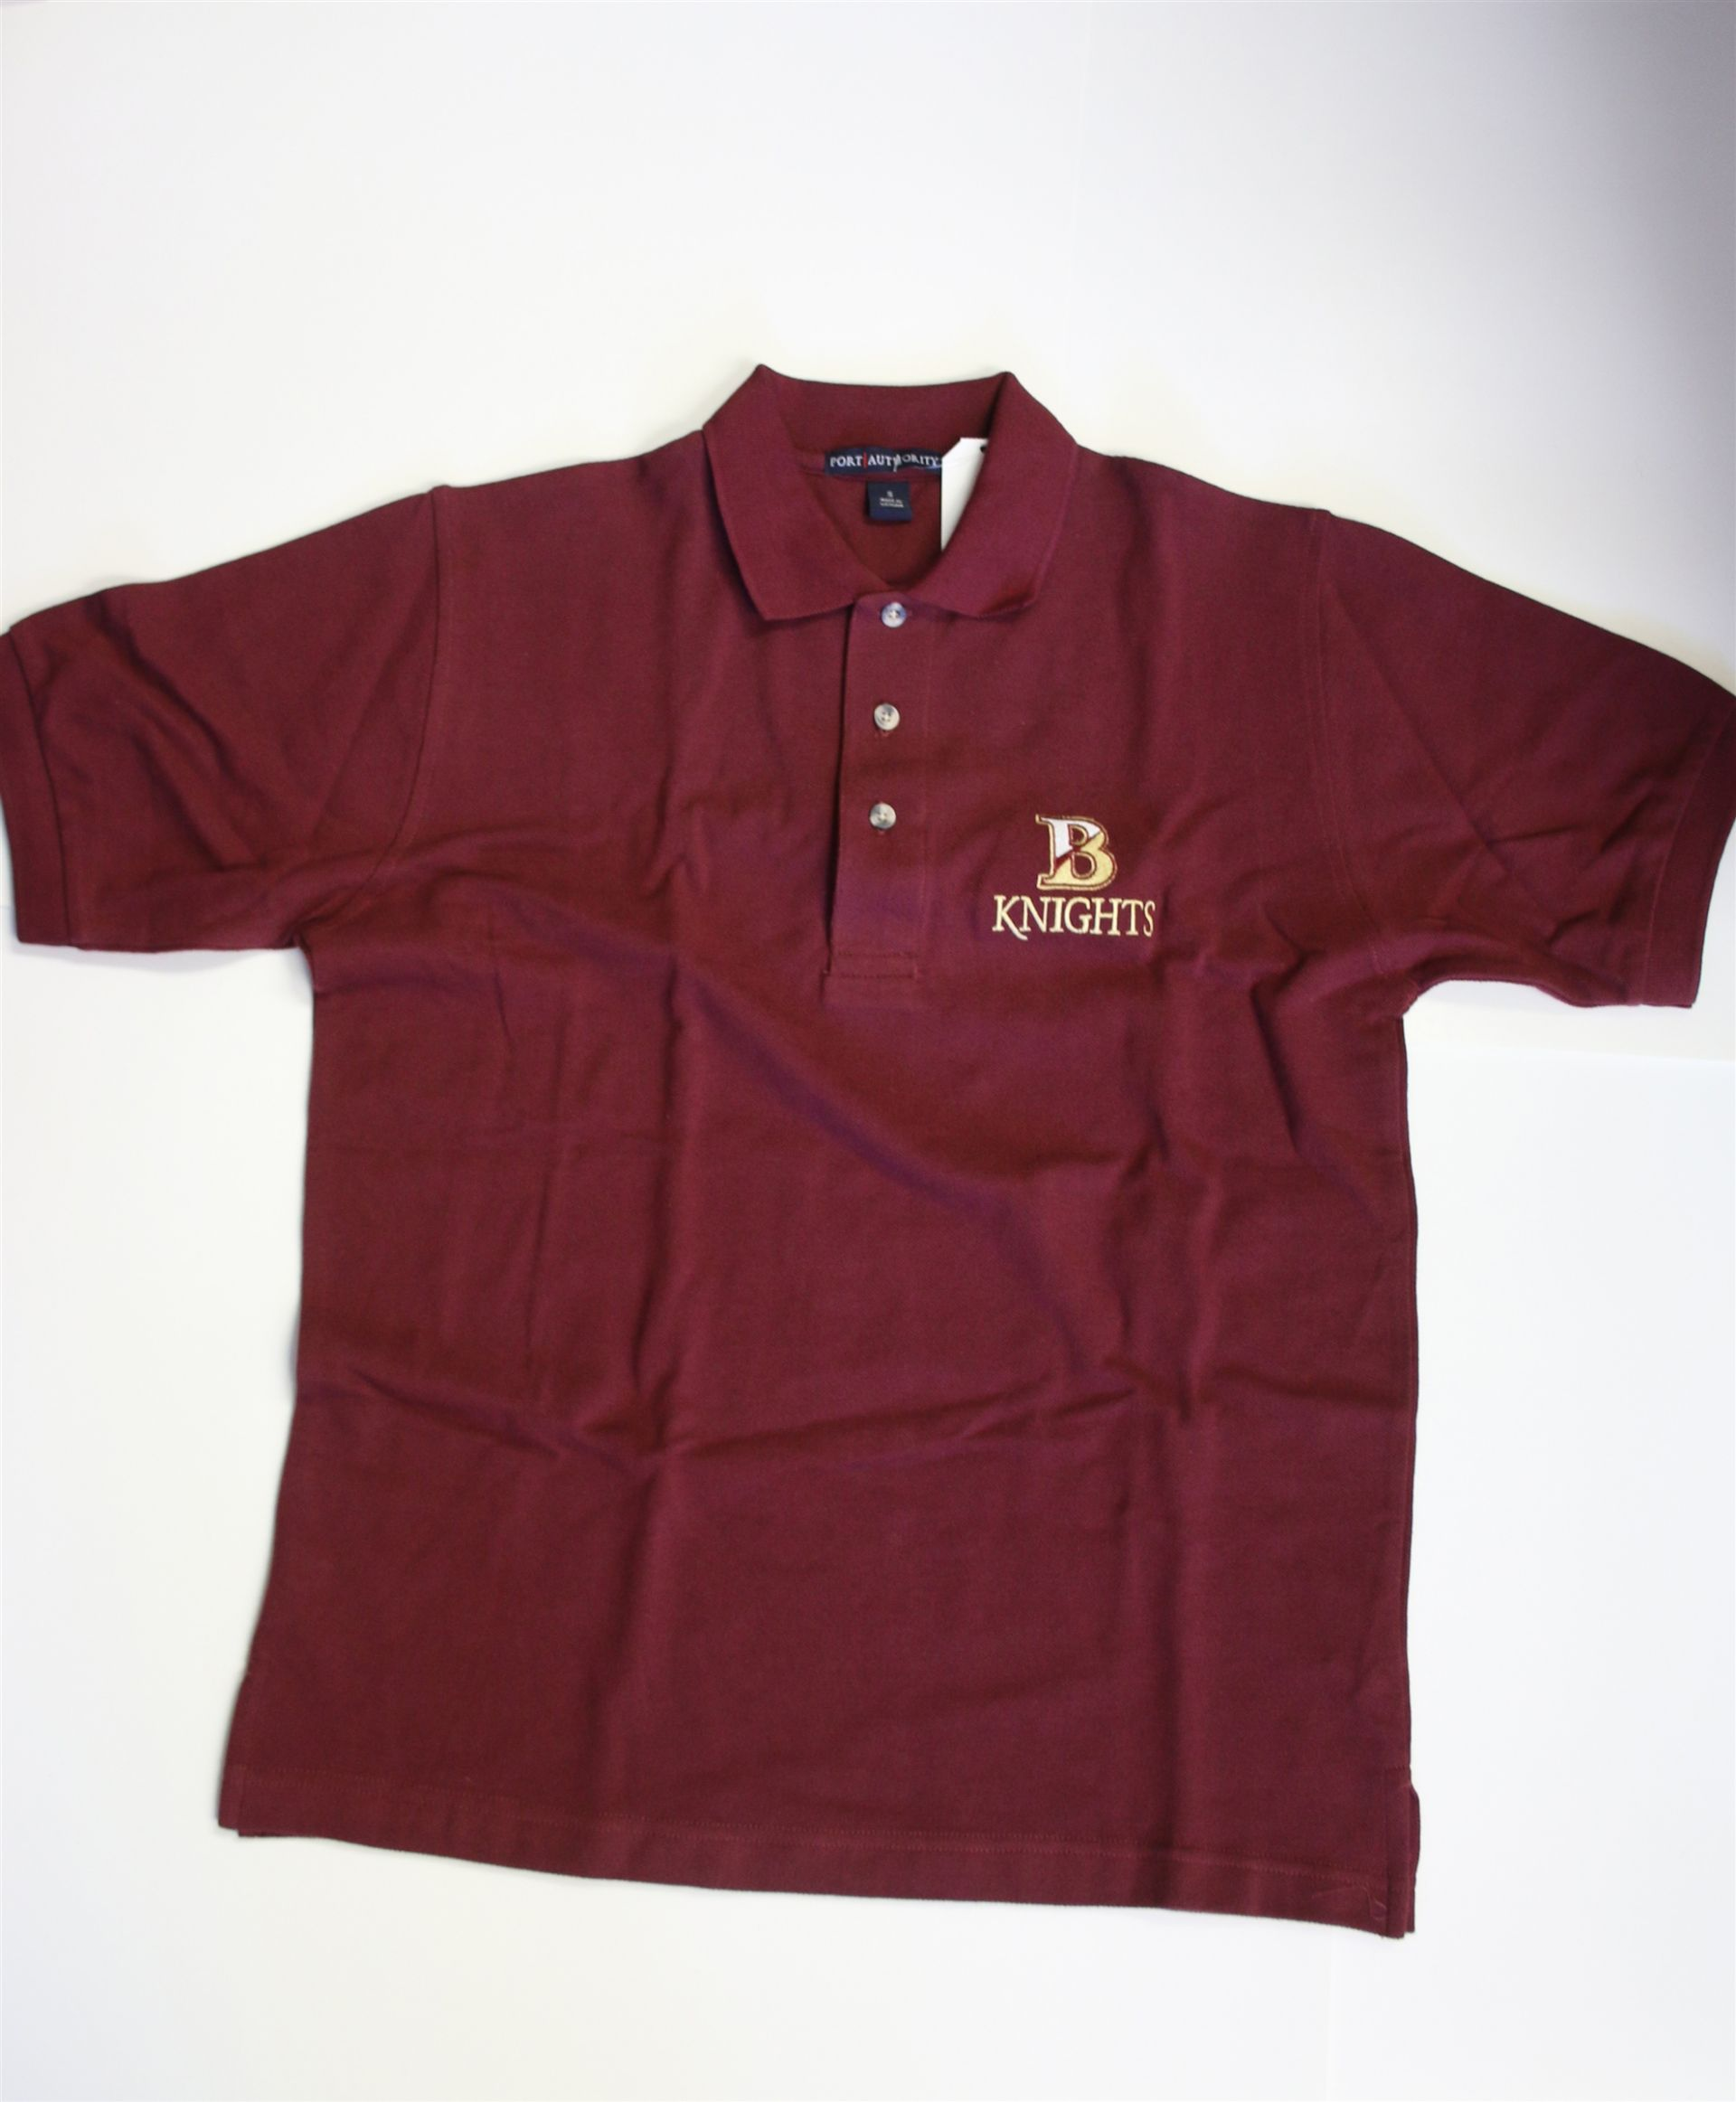 Bishop's Short Sleeve Polo Shirt - Maroon